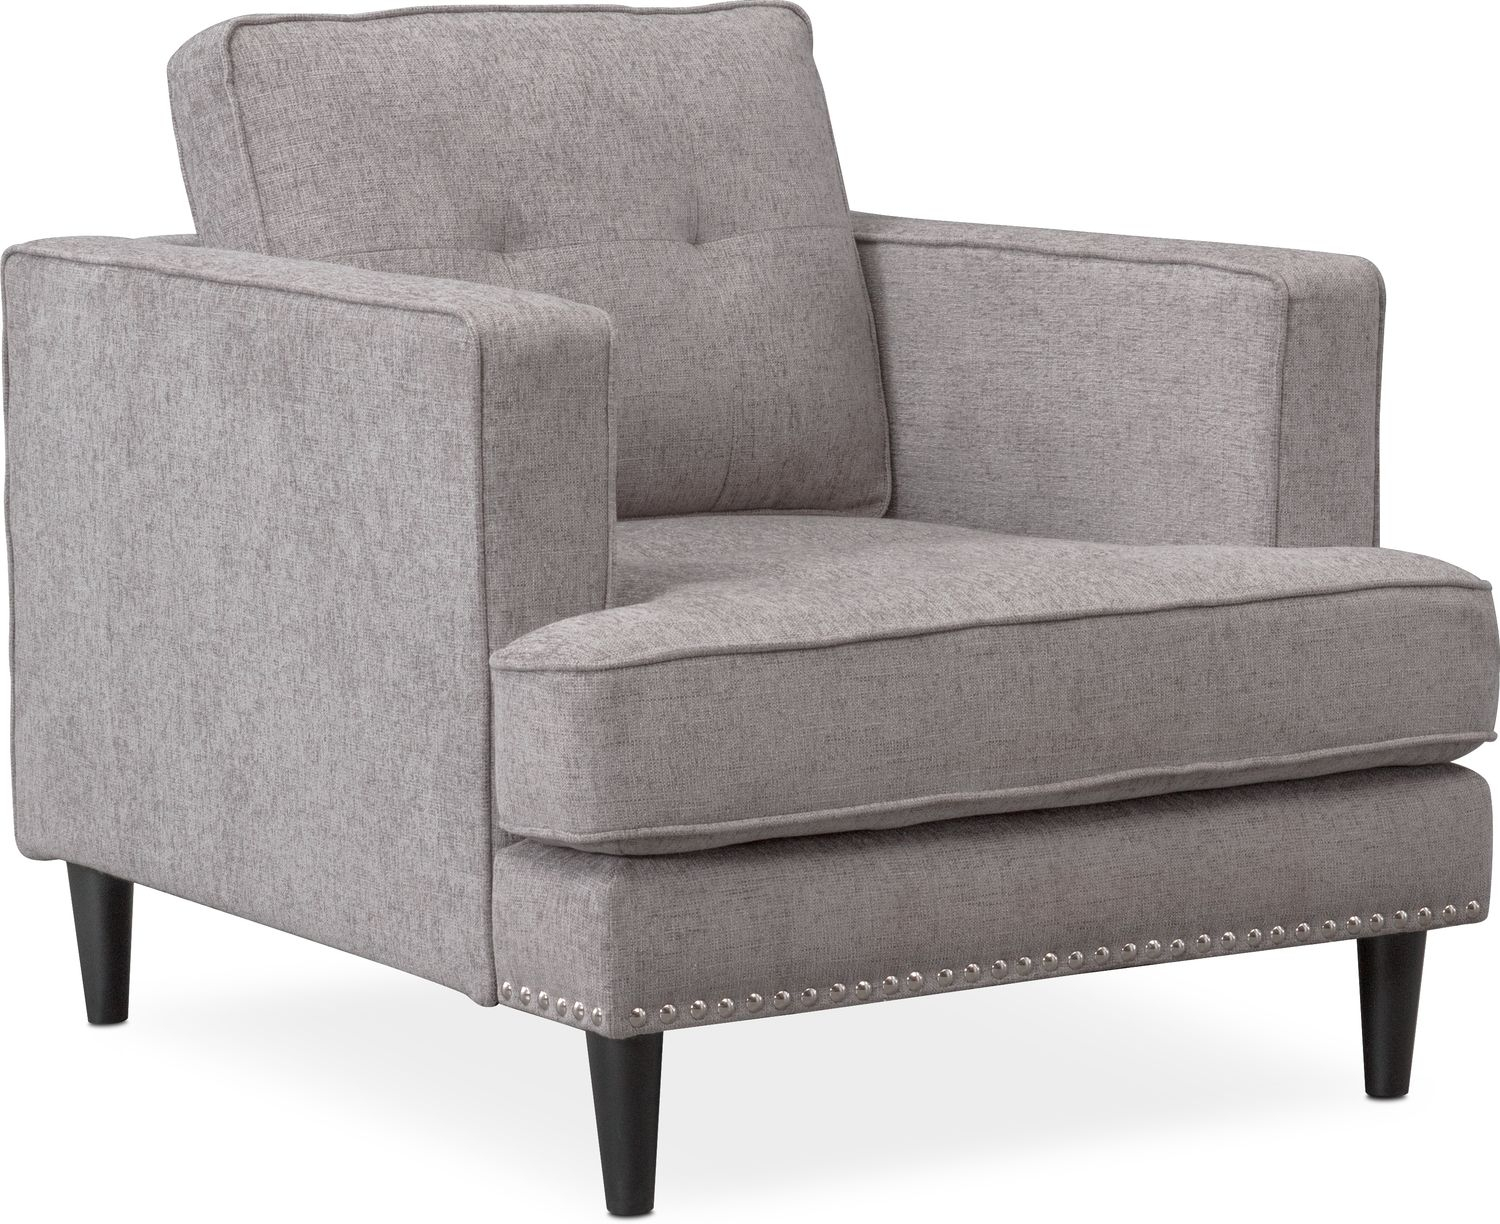 Parker Sofa, Chair And Ottoman Set | Value City Furniture And Mattresses Inside Parker Sofa Chairs (Photo 14 of 20)